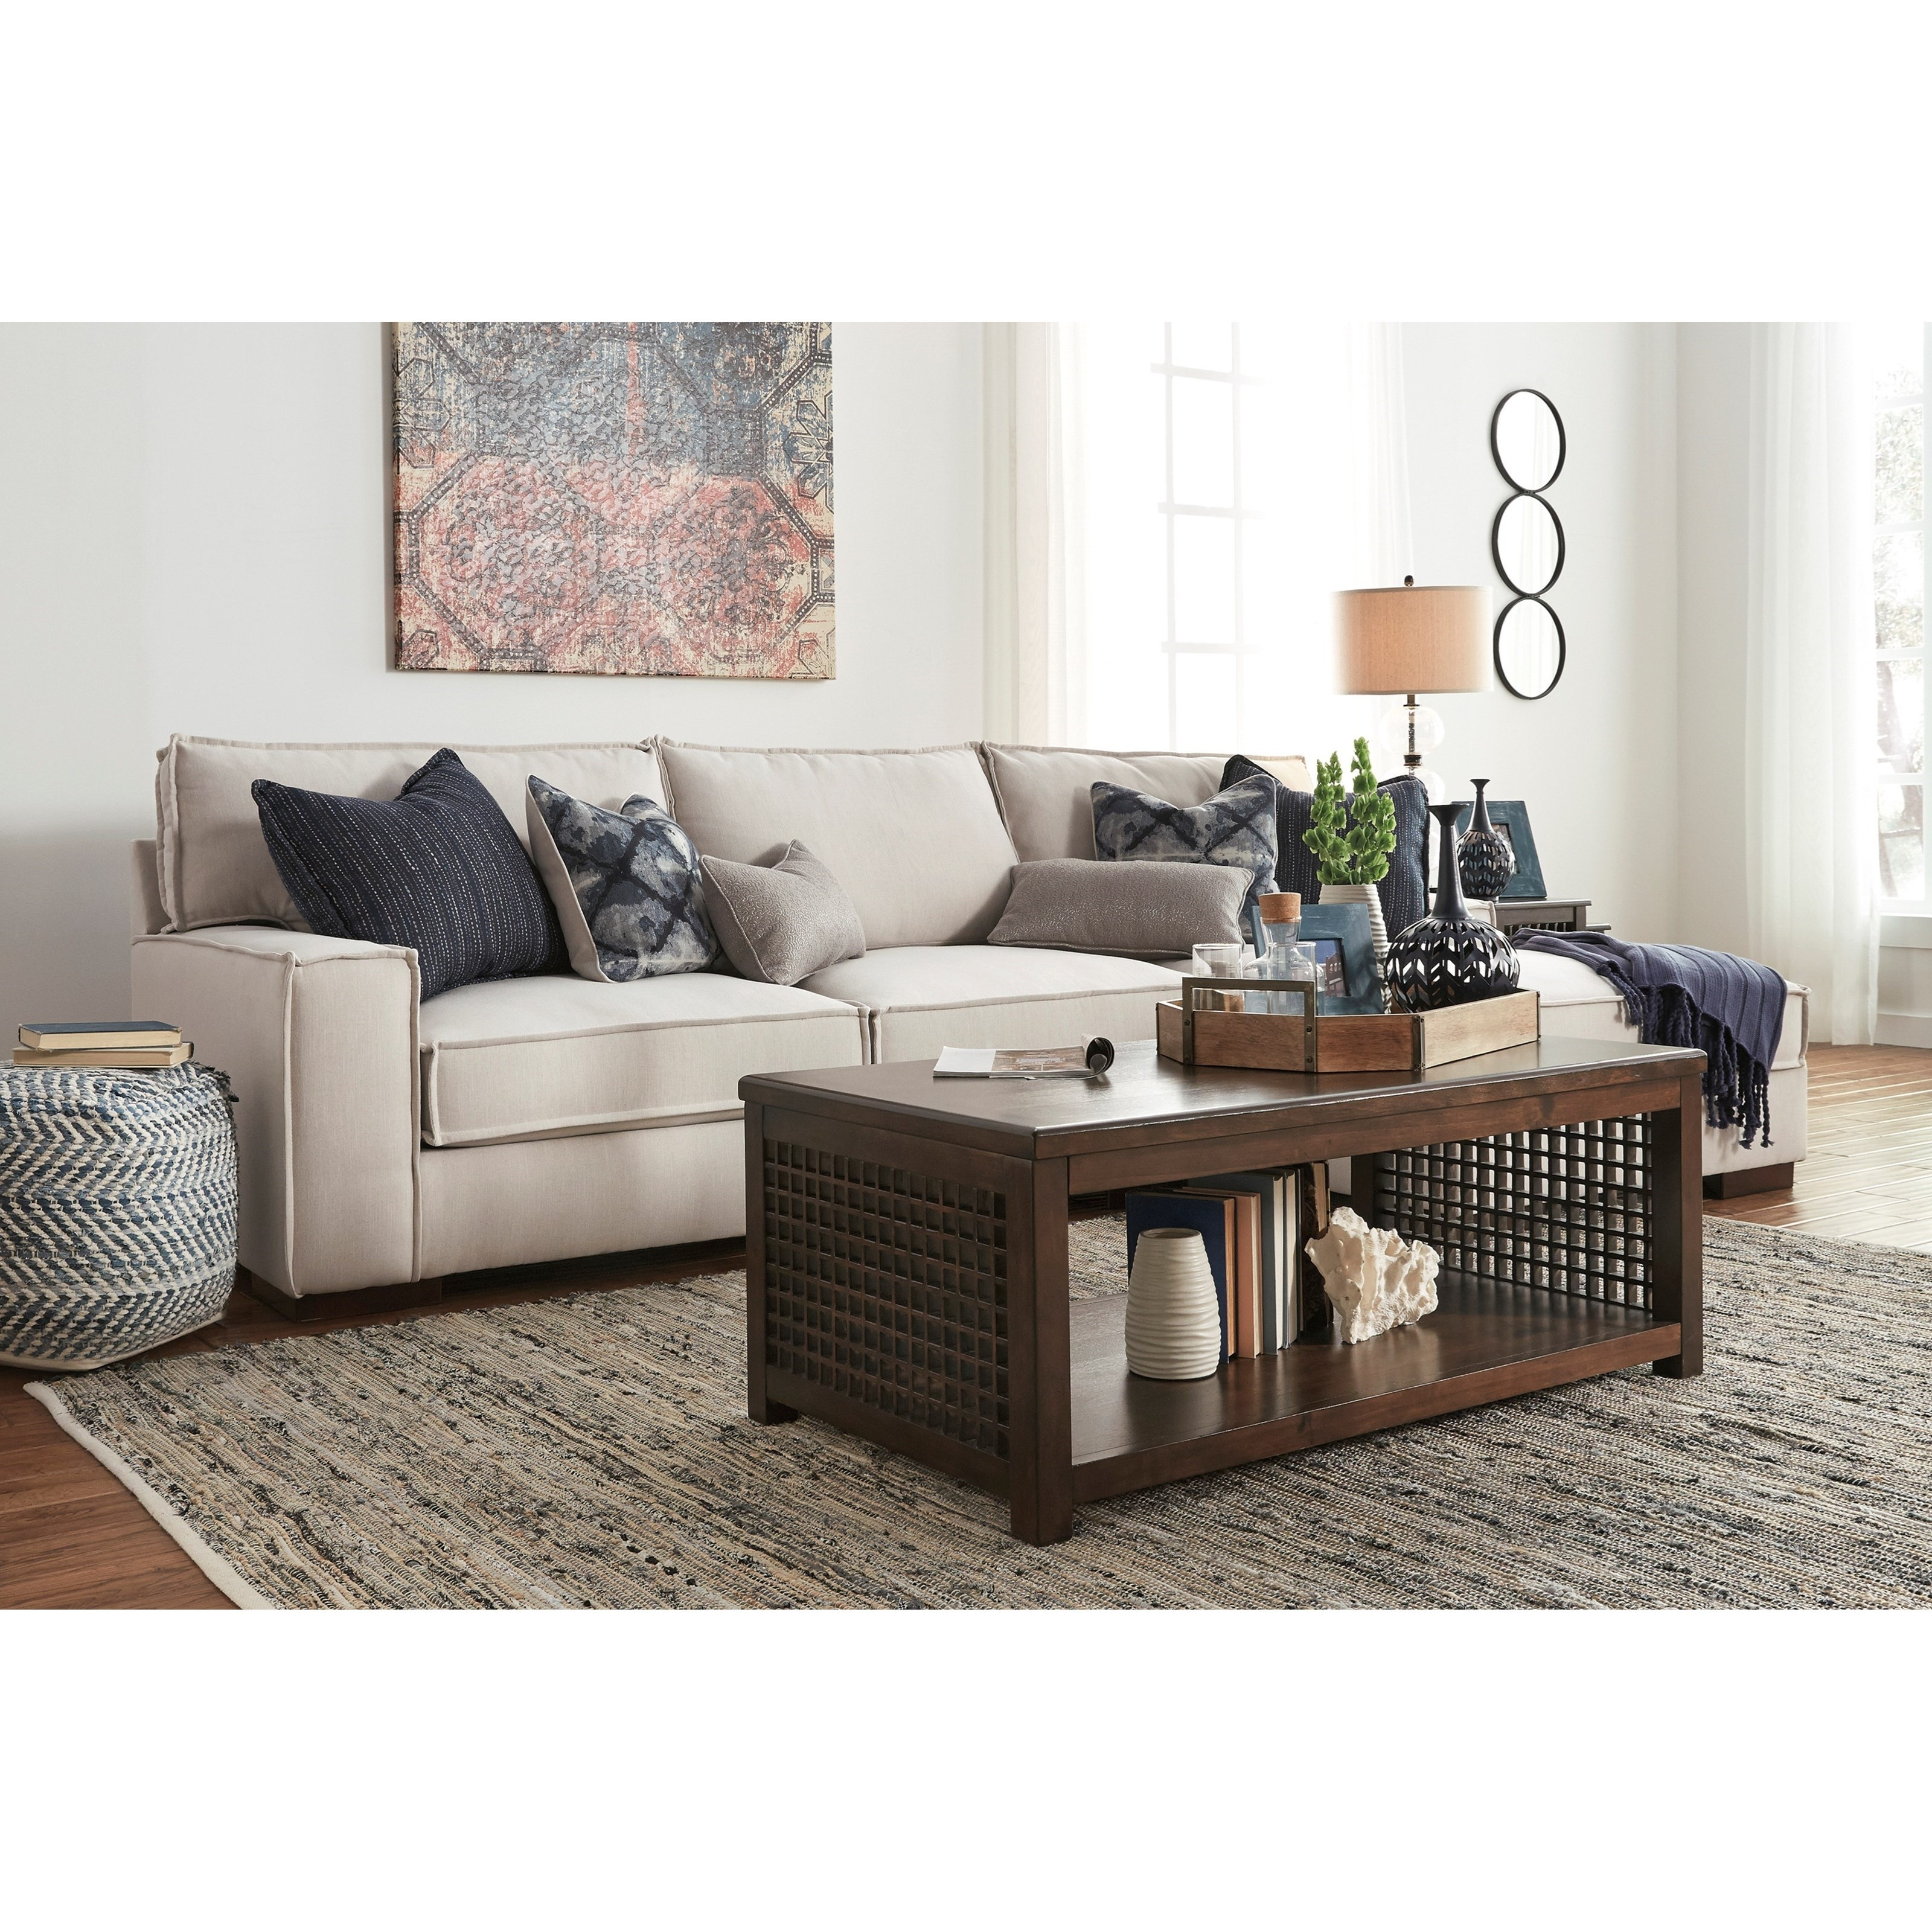 Raf Chaise Laf Sofa | Baci Living Room Inside Mcdade Graphite 2 Piece Sectionals With Raf Chaise (Image 13 of 25)